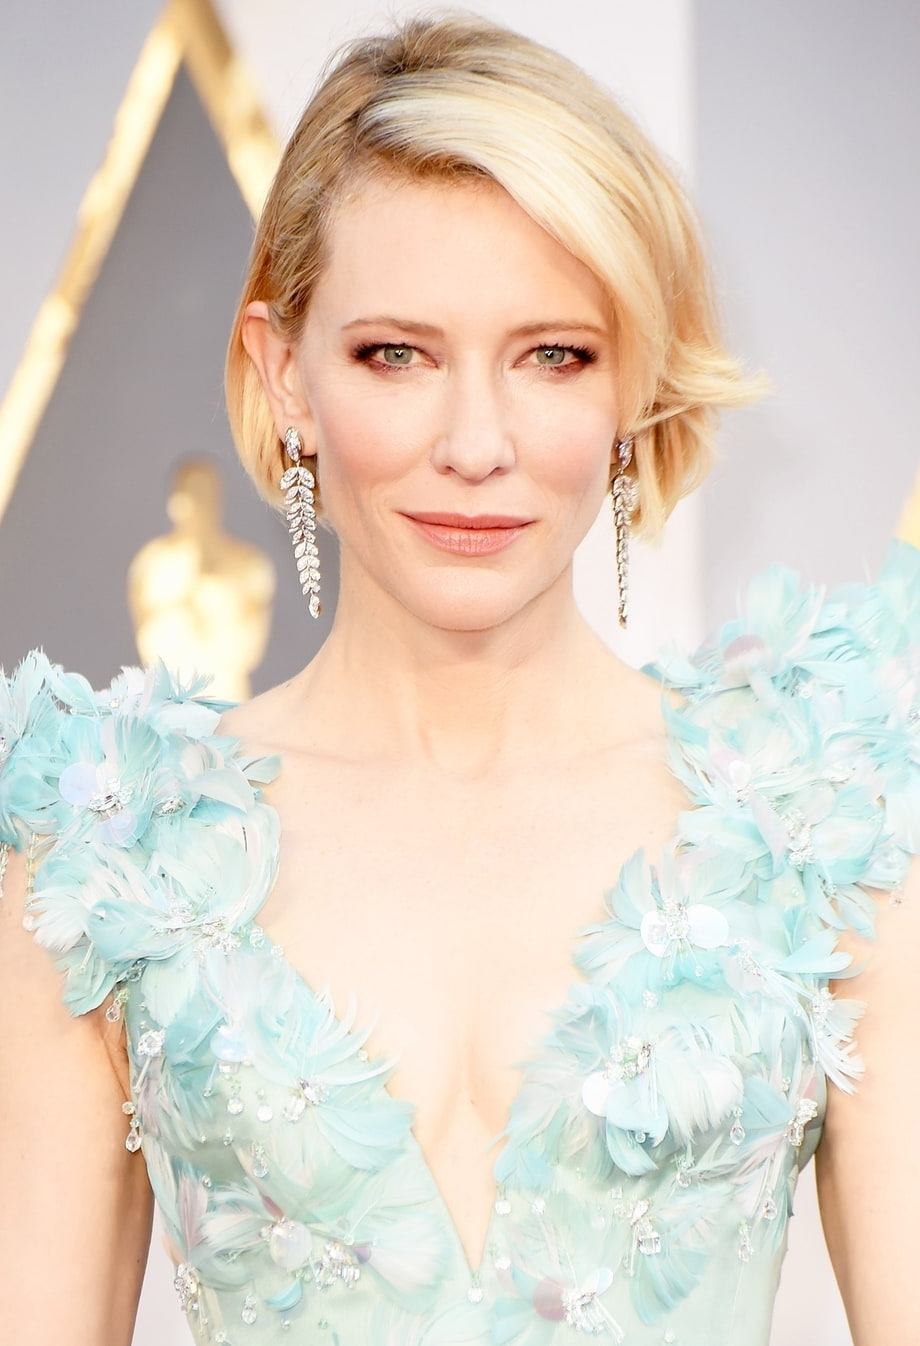 Famous Red Carpet Worthy Hairstyles Regarding Who Made The Cut…2016 Academy Award Blog Worthy Hairstyles (View 5 of 20)